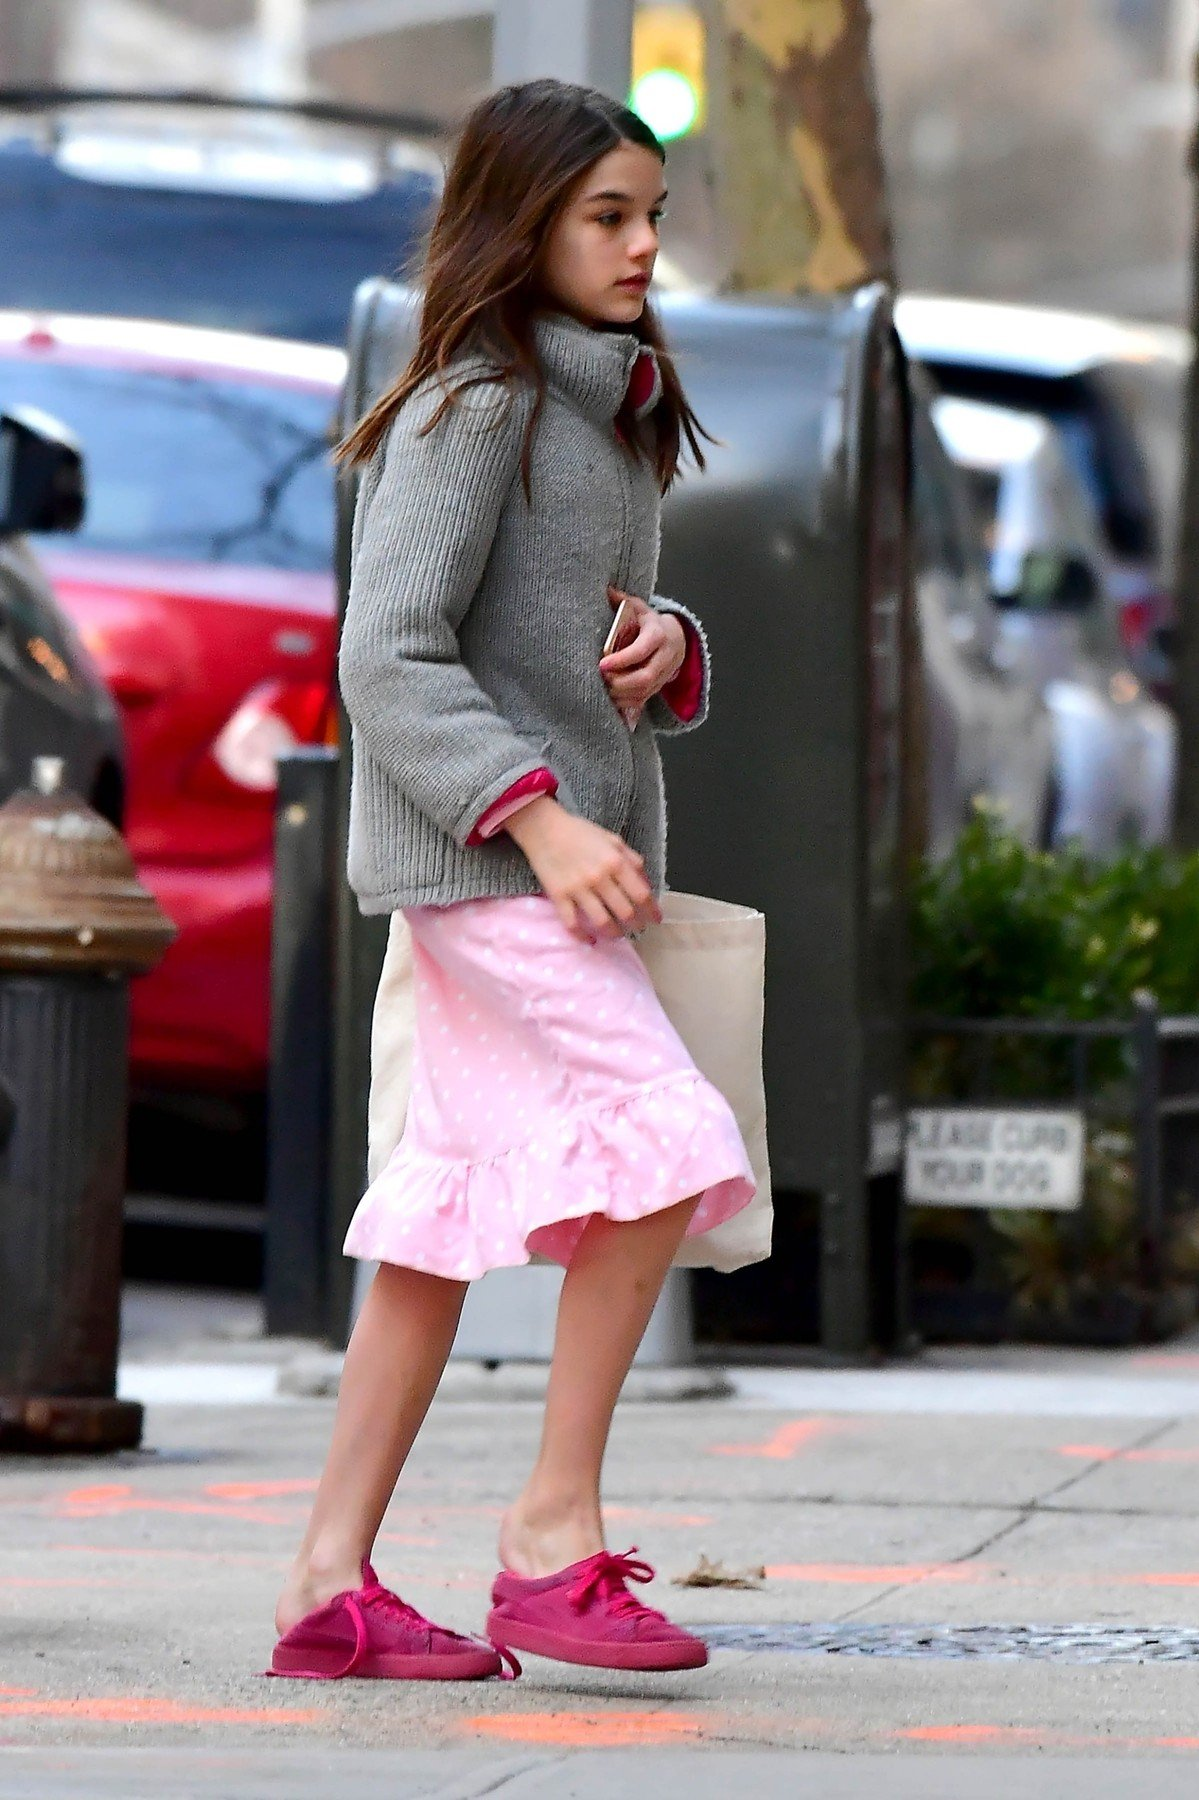 ** RIGHTS: WORLDWIDE EXCEPT IN FRANCE, GERMANY, POLAND ** New York, NY  - *EXCLUSIVE*  - While Jamie Foxx is in town, Katie Holmes and Suri  Cruise are pictured arriving home at 7:30am!  Suri looks tired as she makes her way into the apartment after the two arrived home early this morning in a yellow cab.  Pictured: Suri Cruise  BACKGRID USA 28 MARCH 2019, Image: 422899503, License: Rights-managed, Restrictions: , Model Release: no, Credit line: Profimedia, Backgrid USA